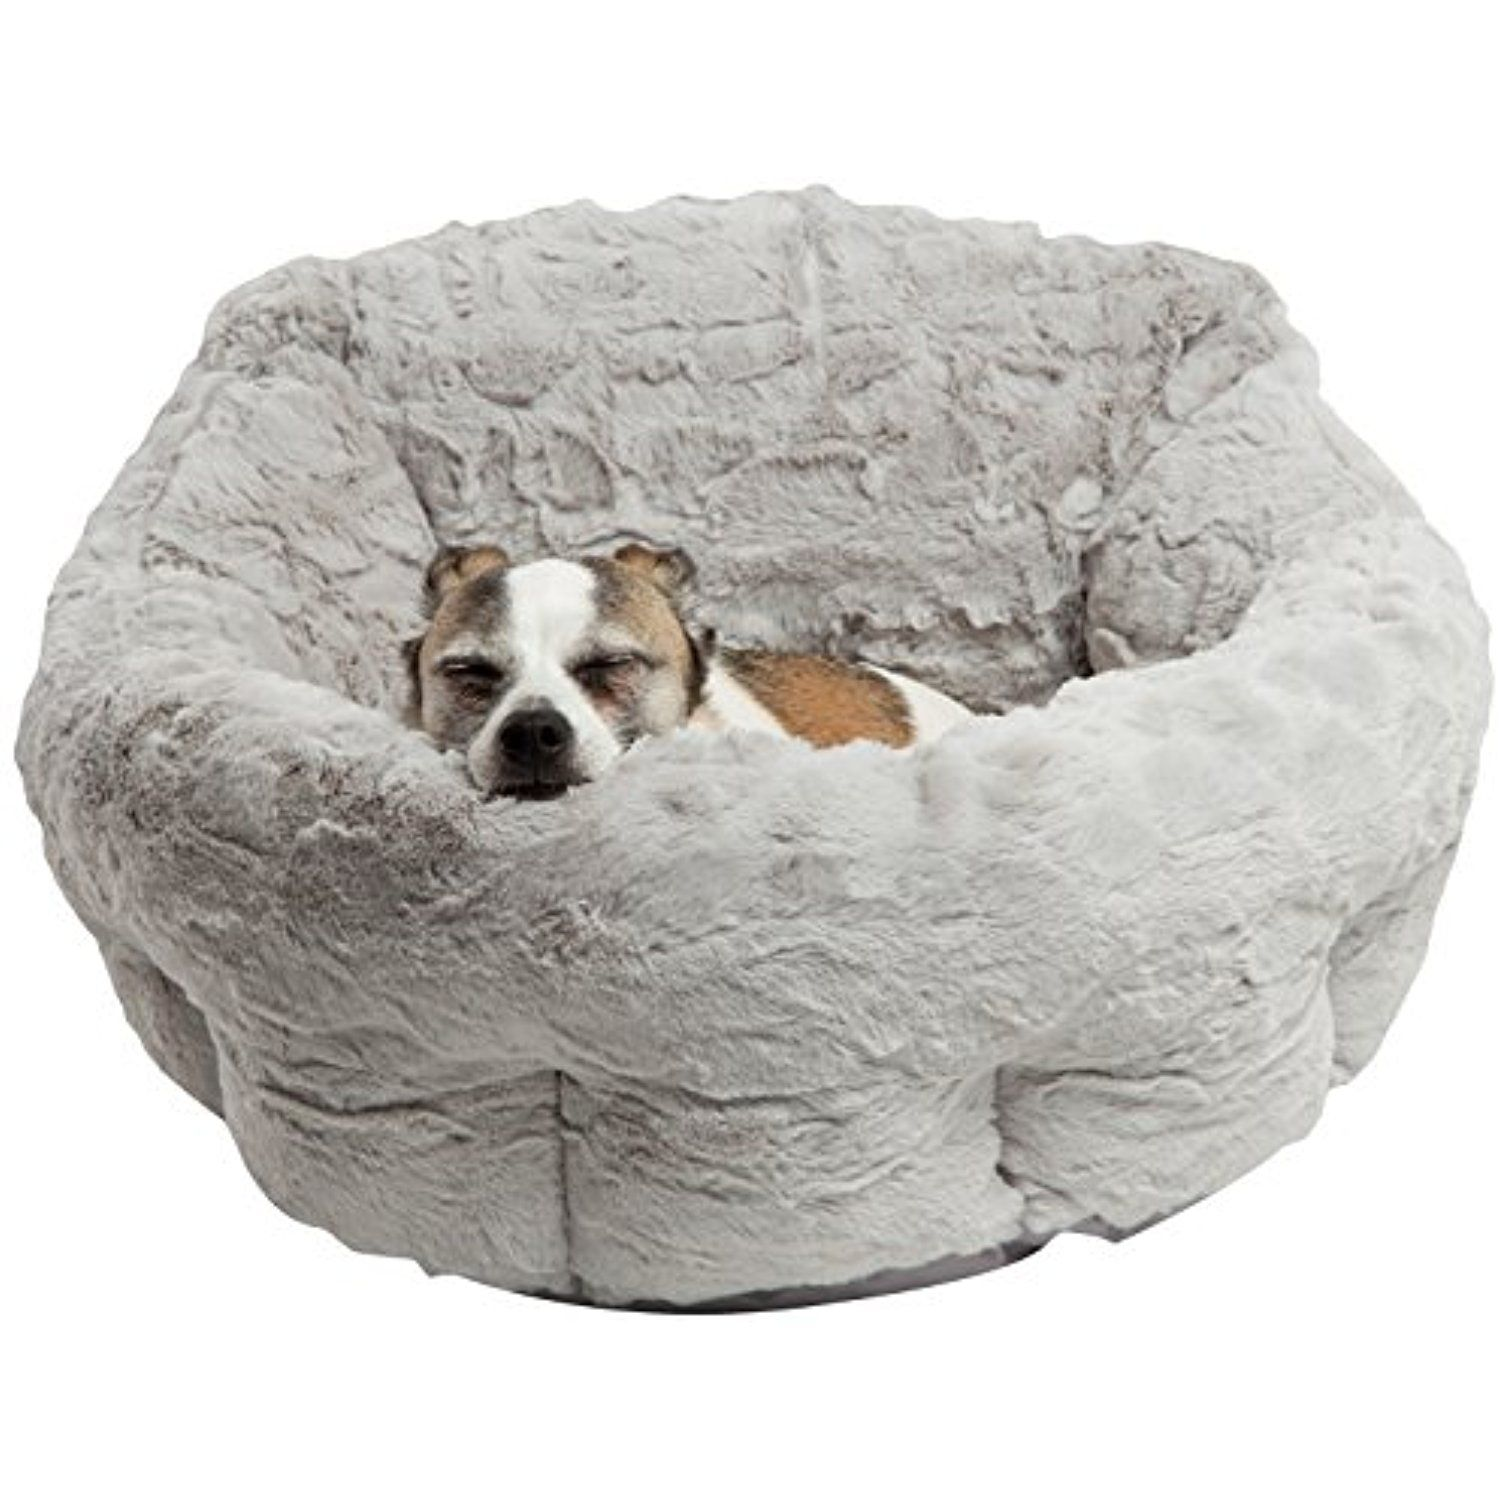 Best Friends By Sheri Dpd Lux Gry Deep Dish Cuddler In Lux Gray One Size You Can Get More Details By Clicking On The Imag Cool Dog Beds Dog Bed Small Pets